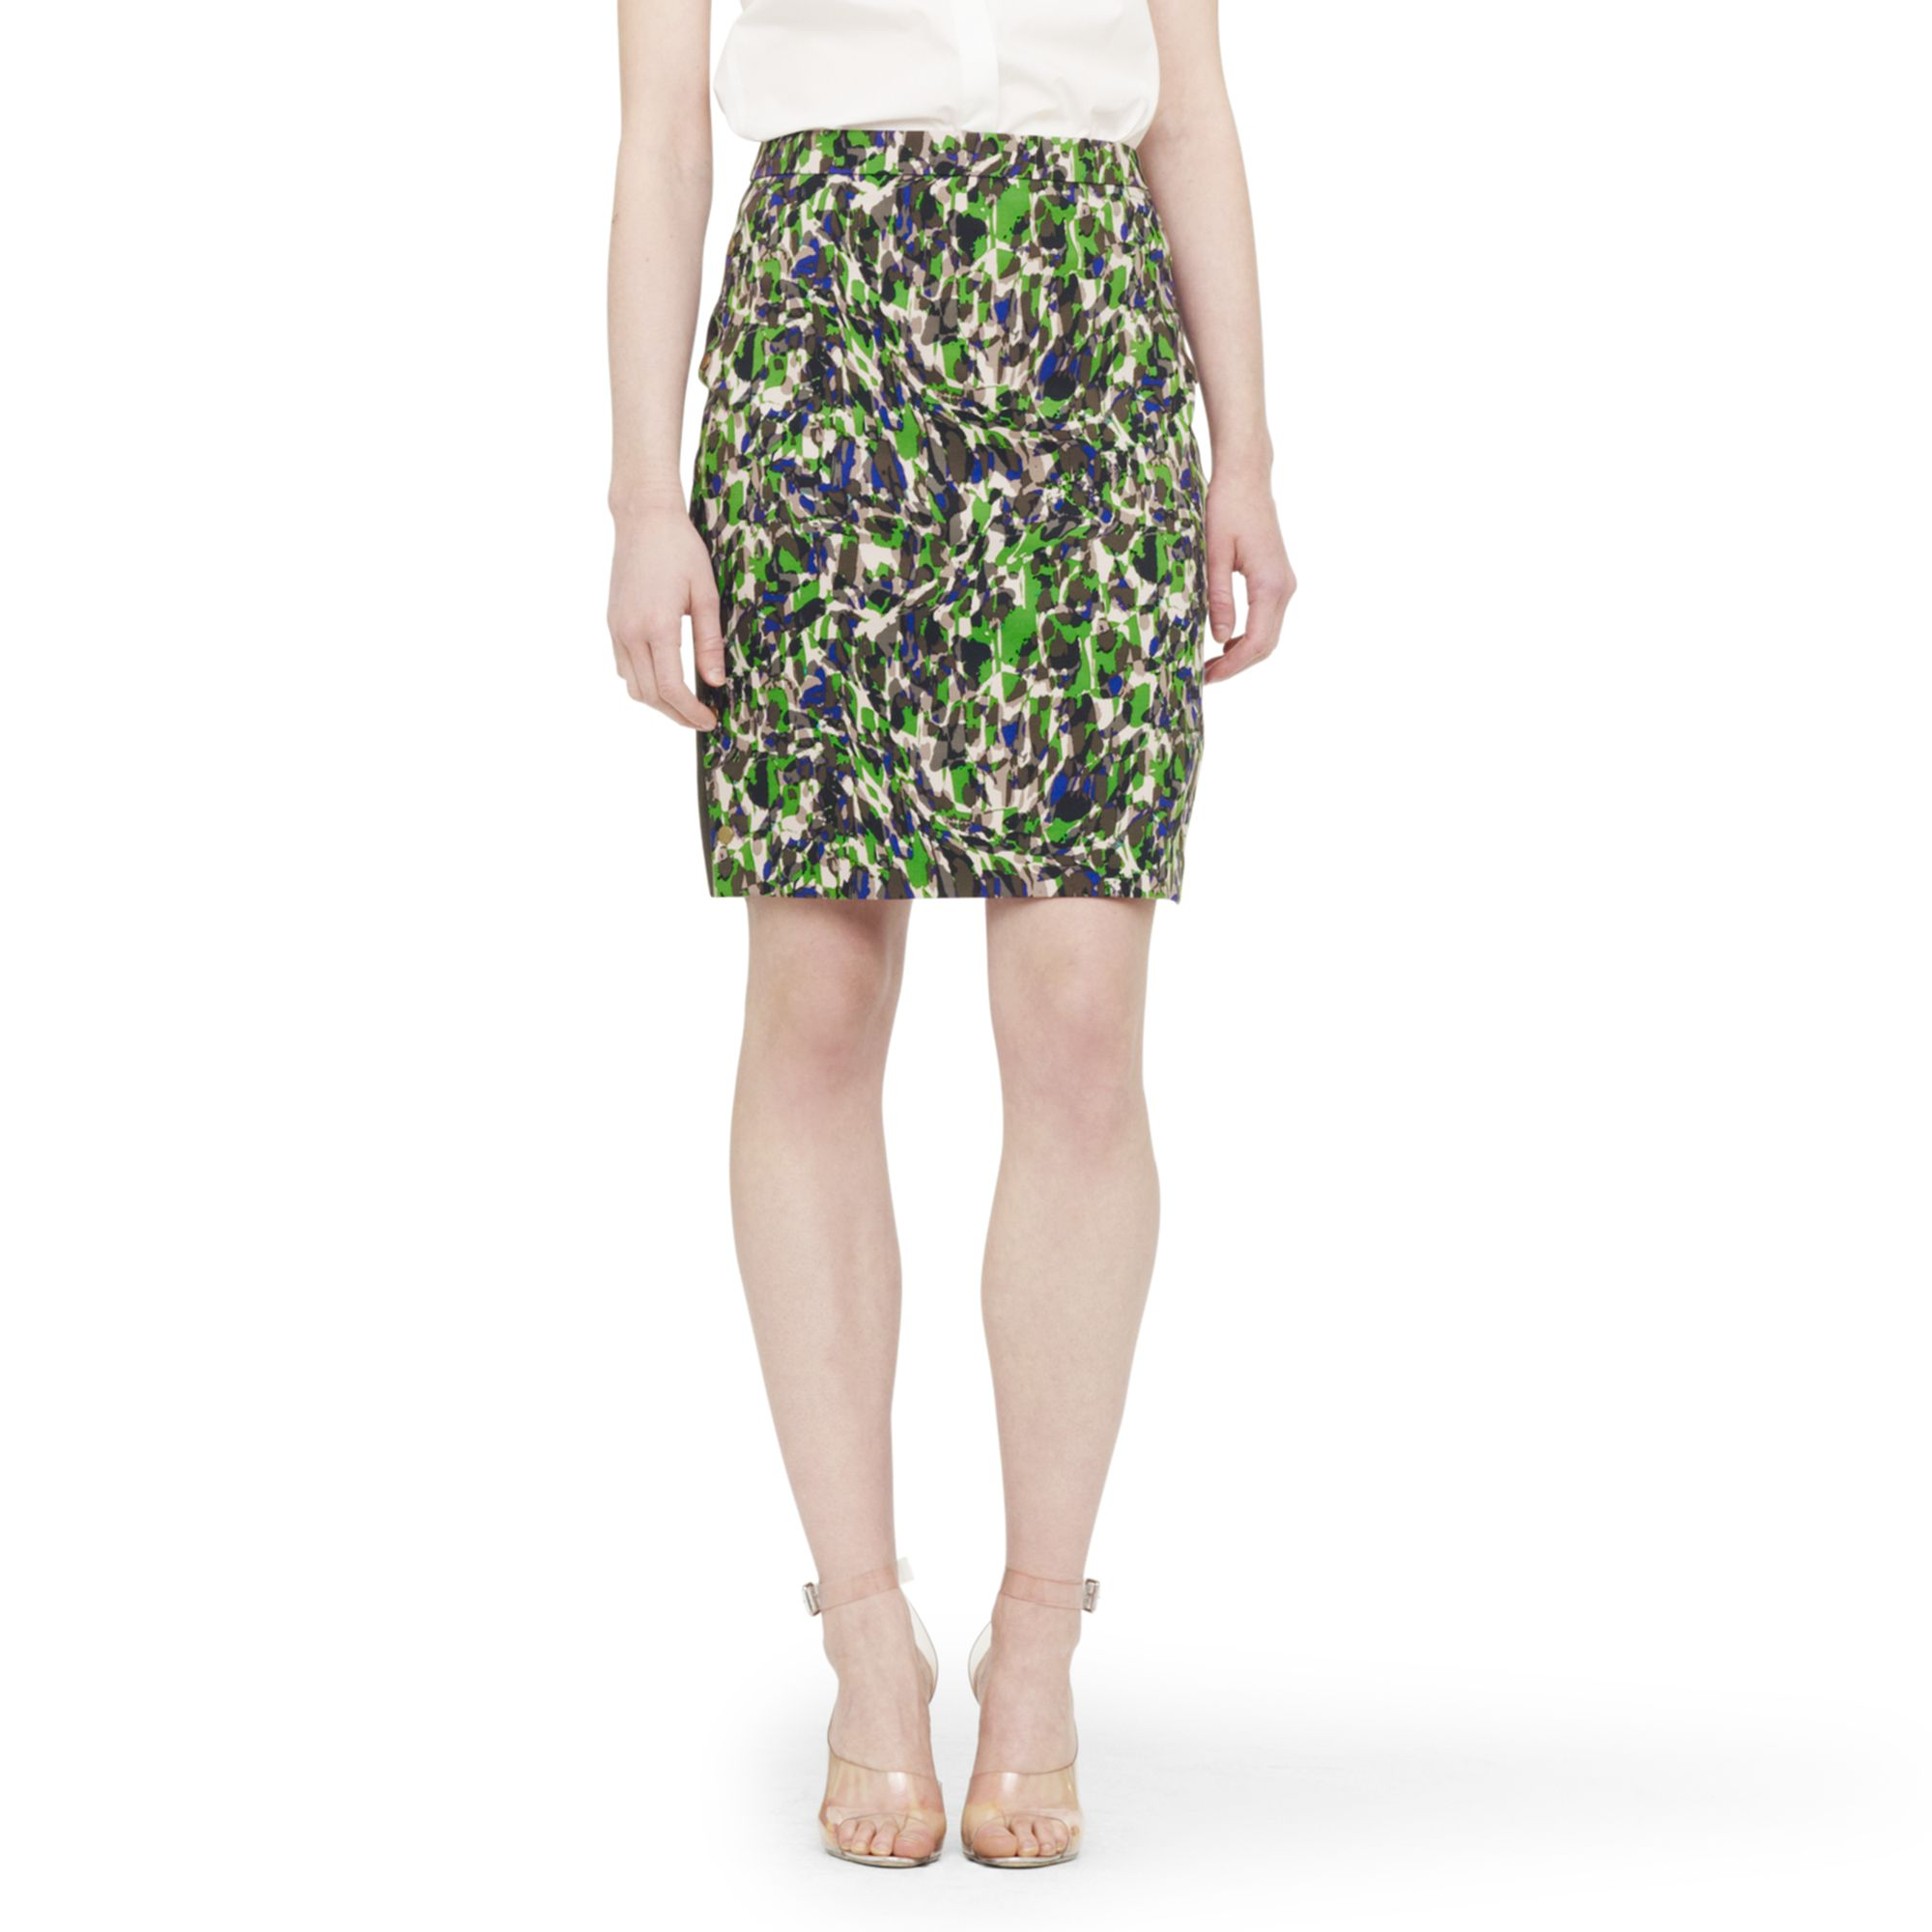 club monaco carey printed pencil skirt in green techno jungle print lyst